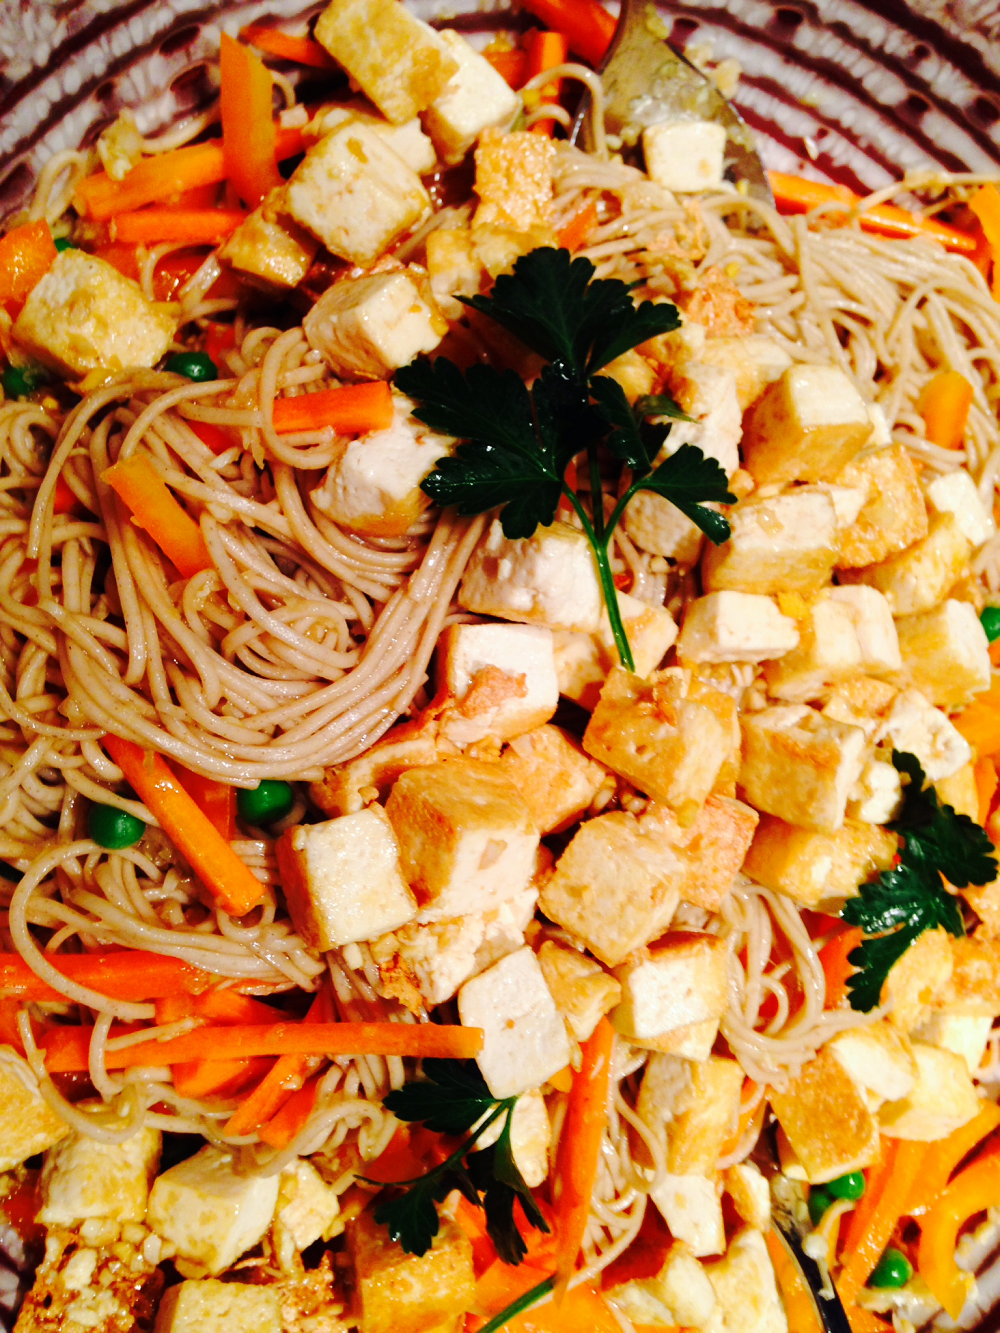 Teriyaki Tofu and Veggies with Soba Noodles